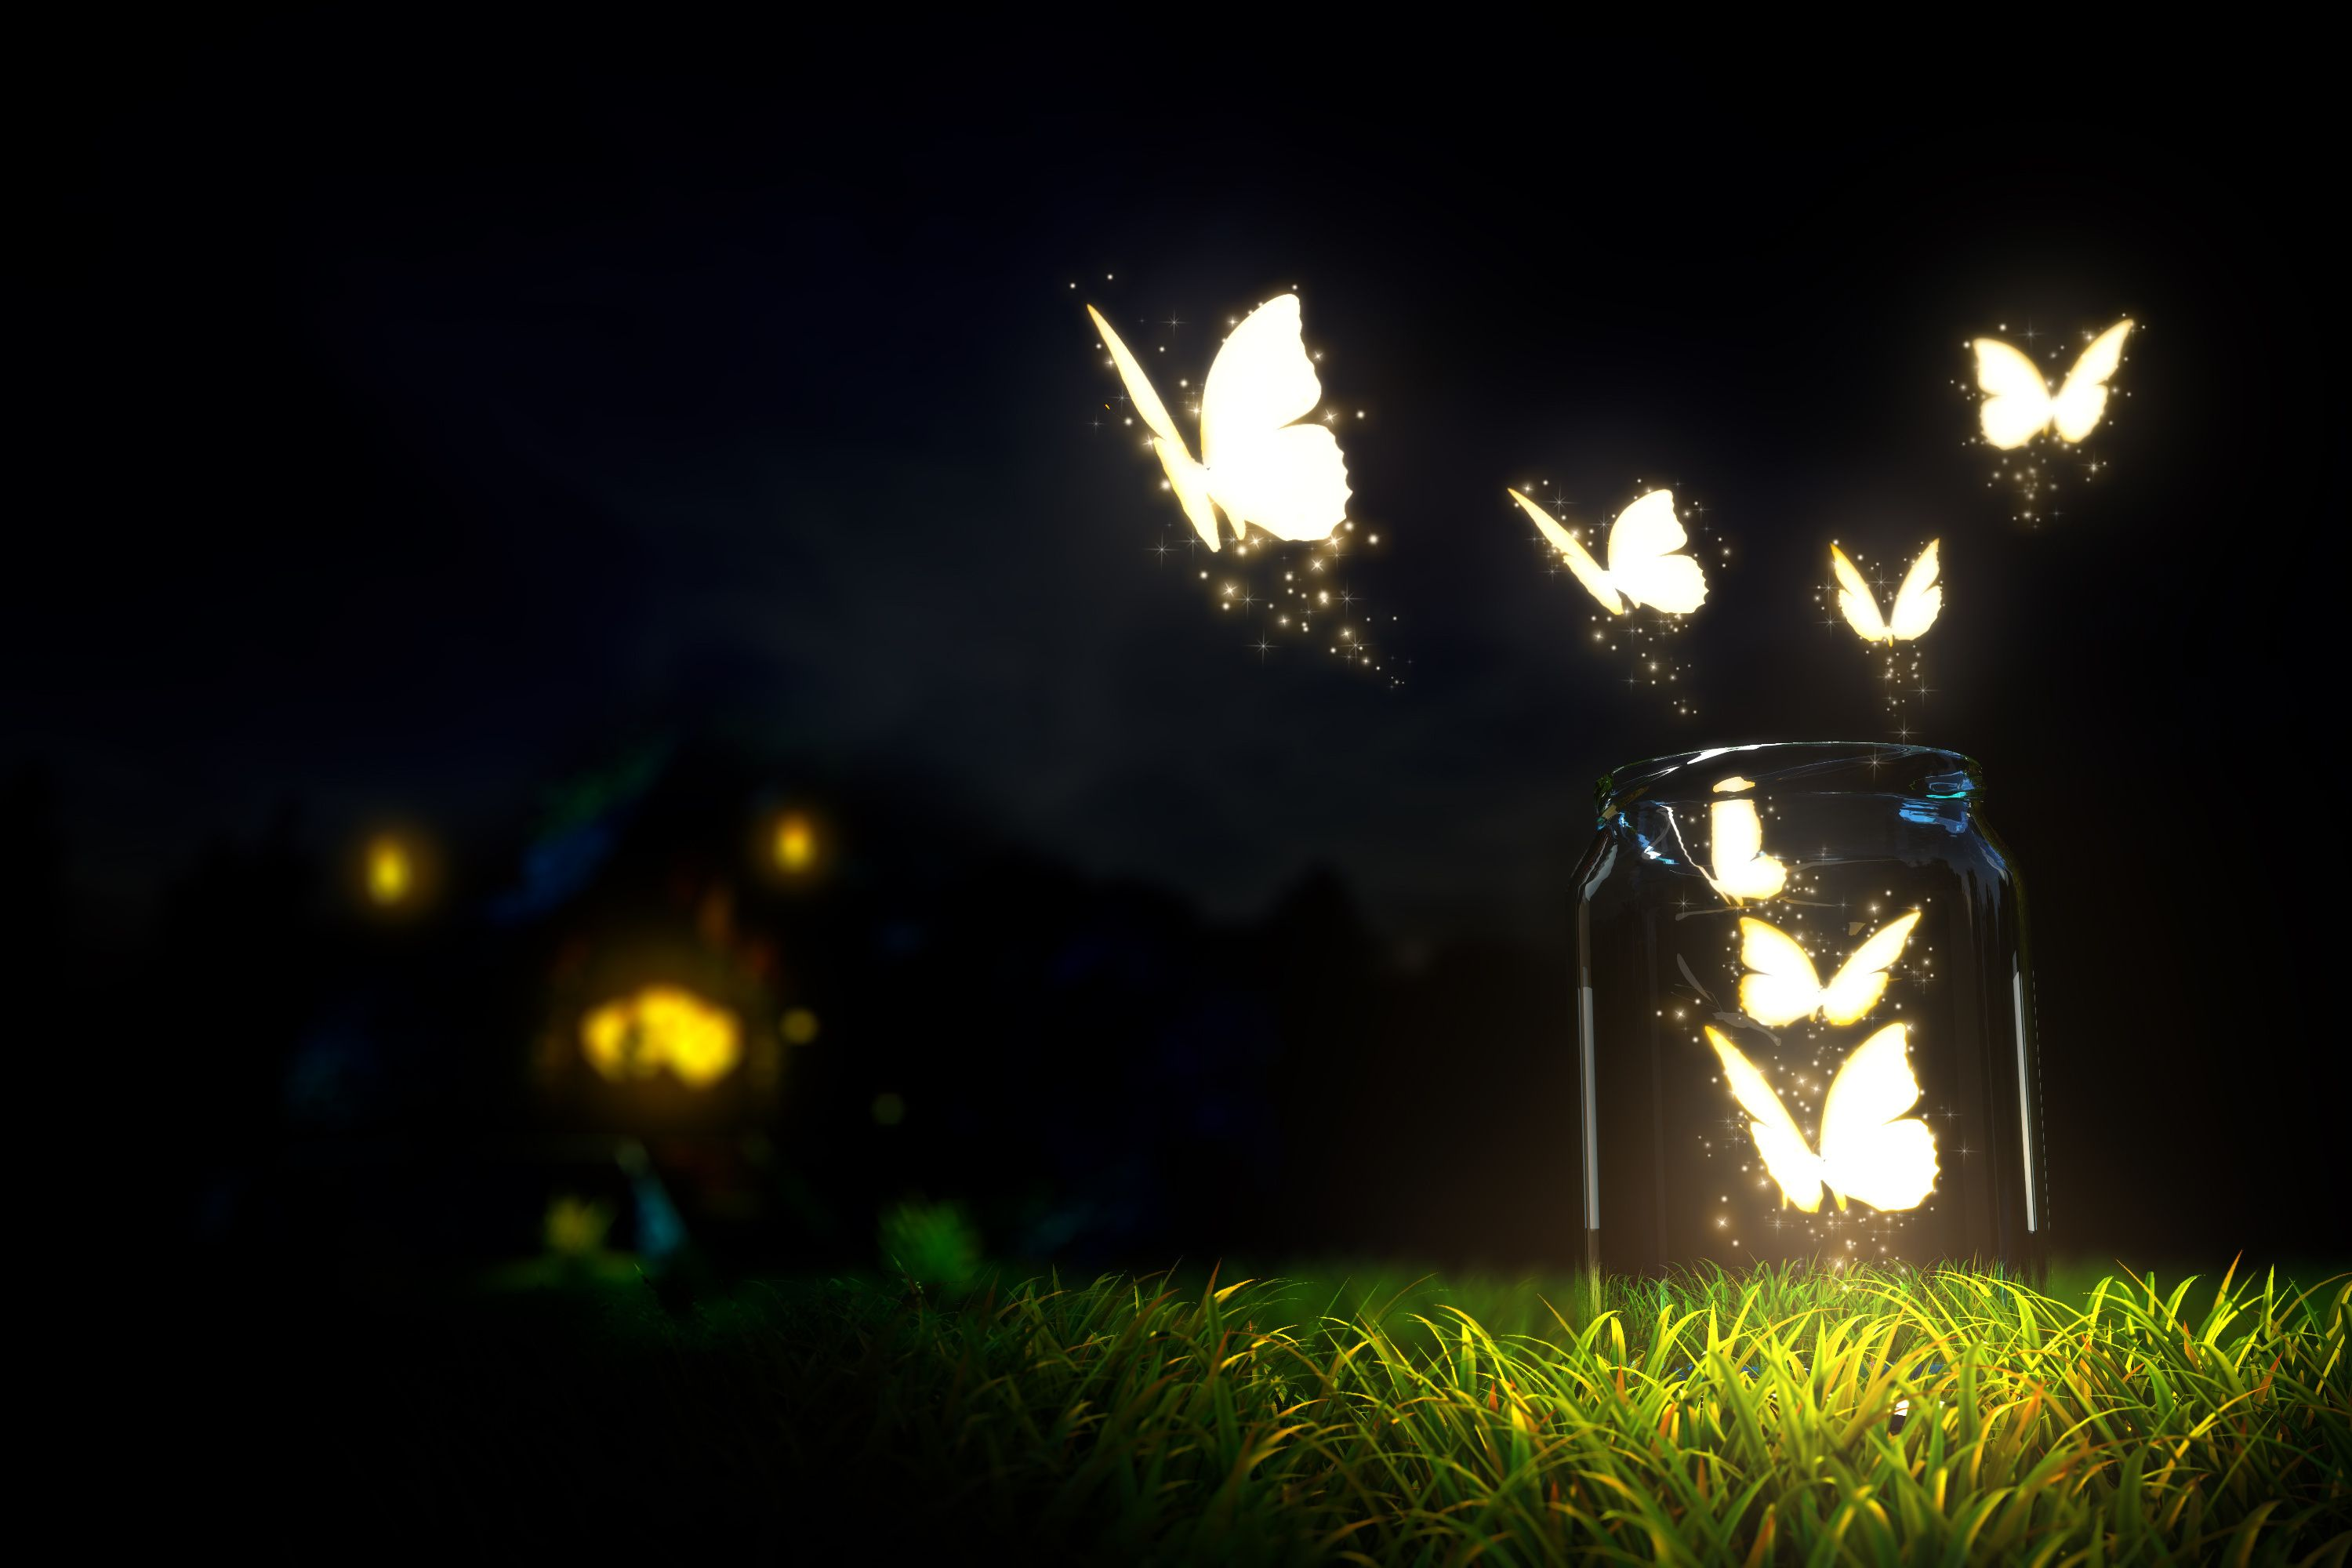 Download Wallpaper x Butterfly Insect Flower Full HD